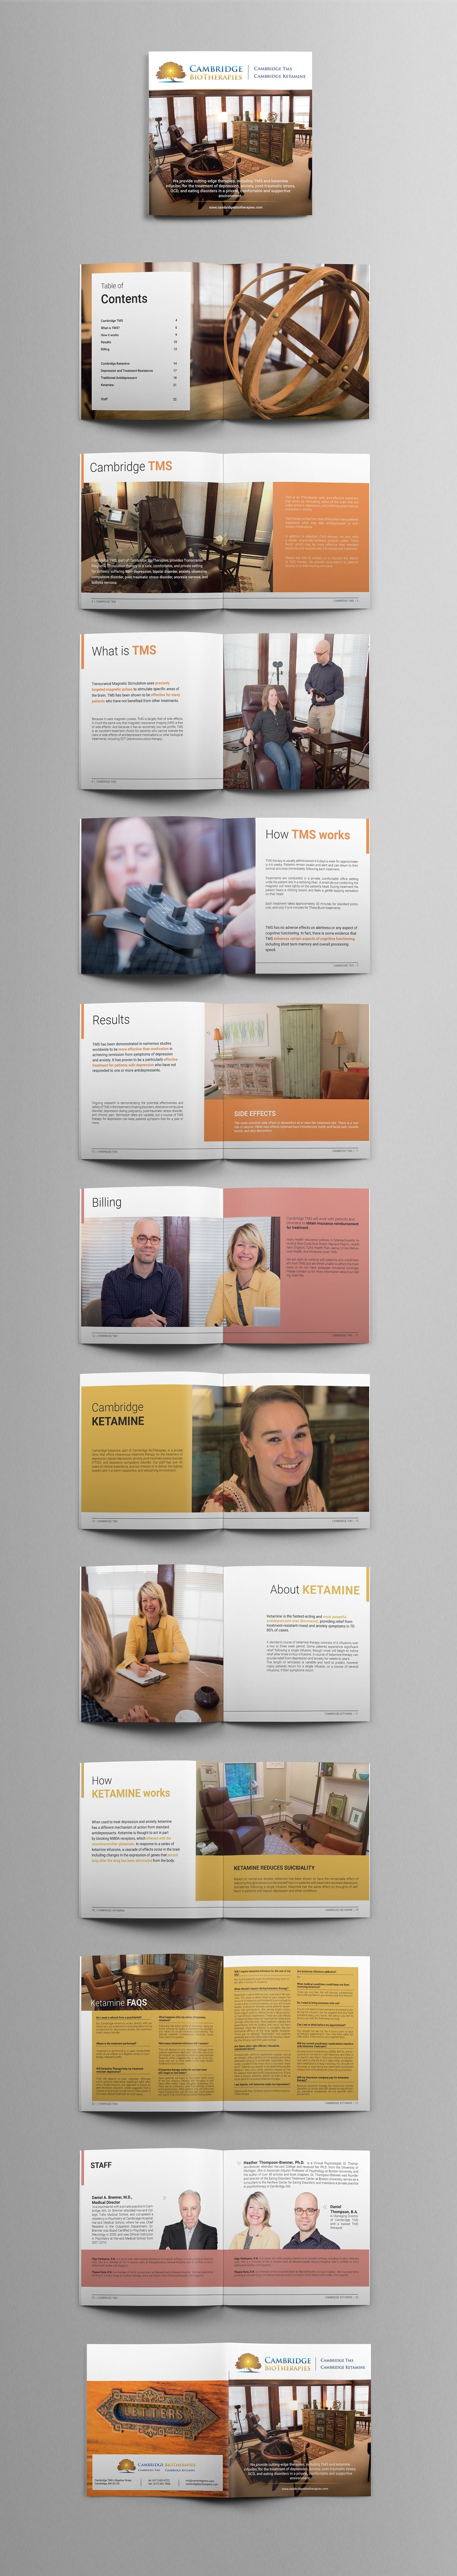 Designs  Brochure Design  Clean And Contemporary  For Mental